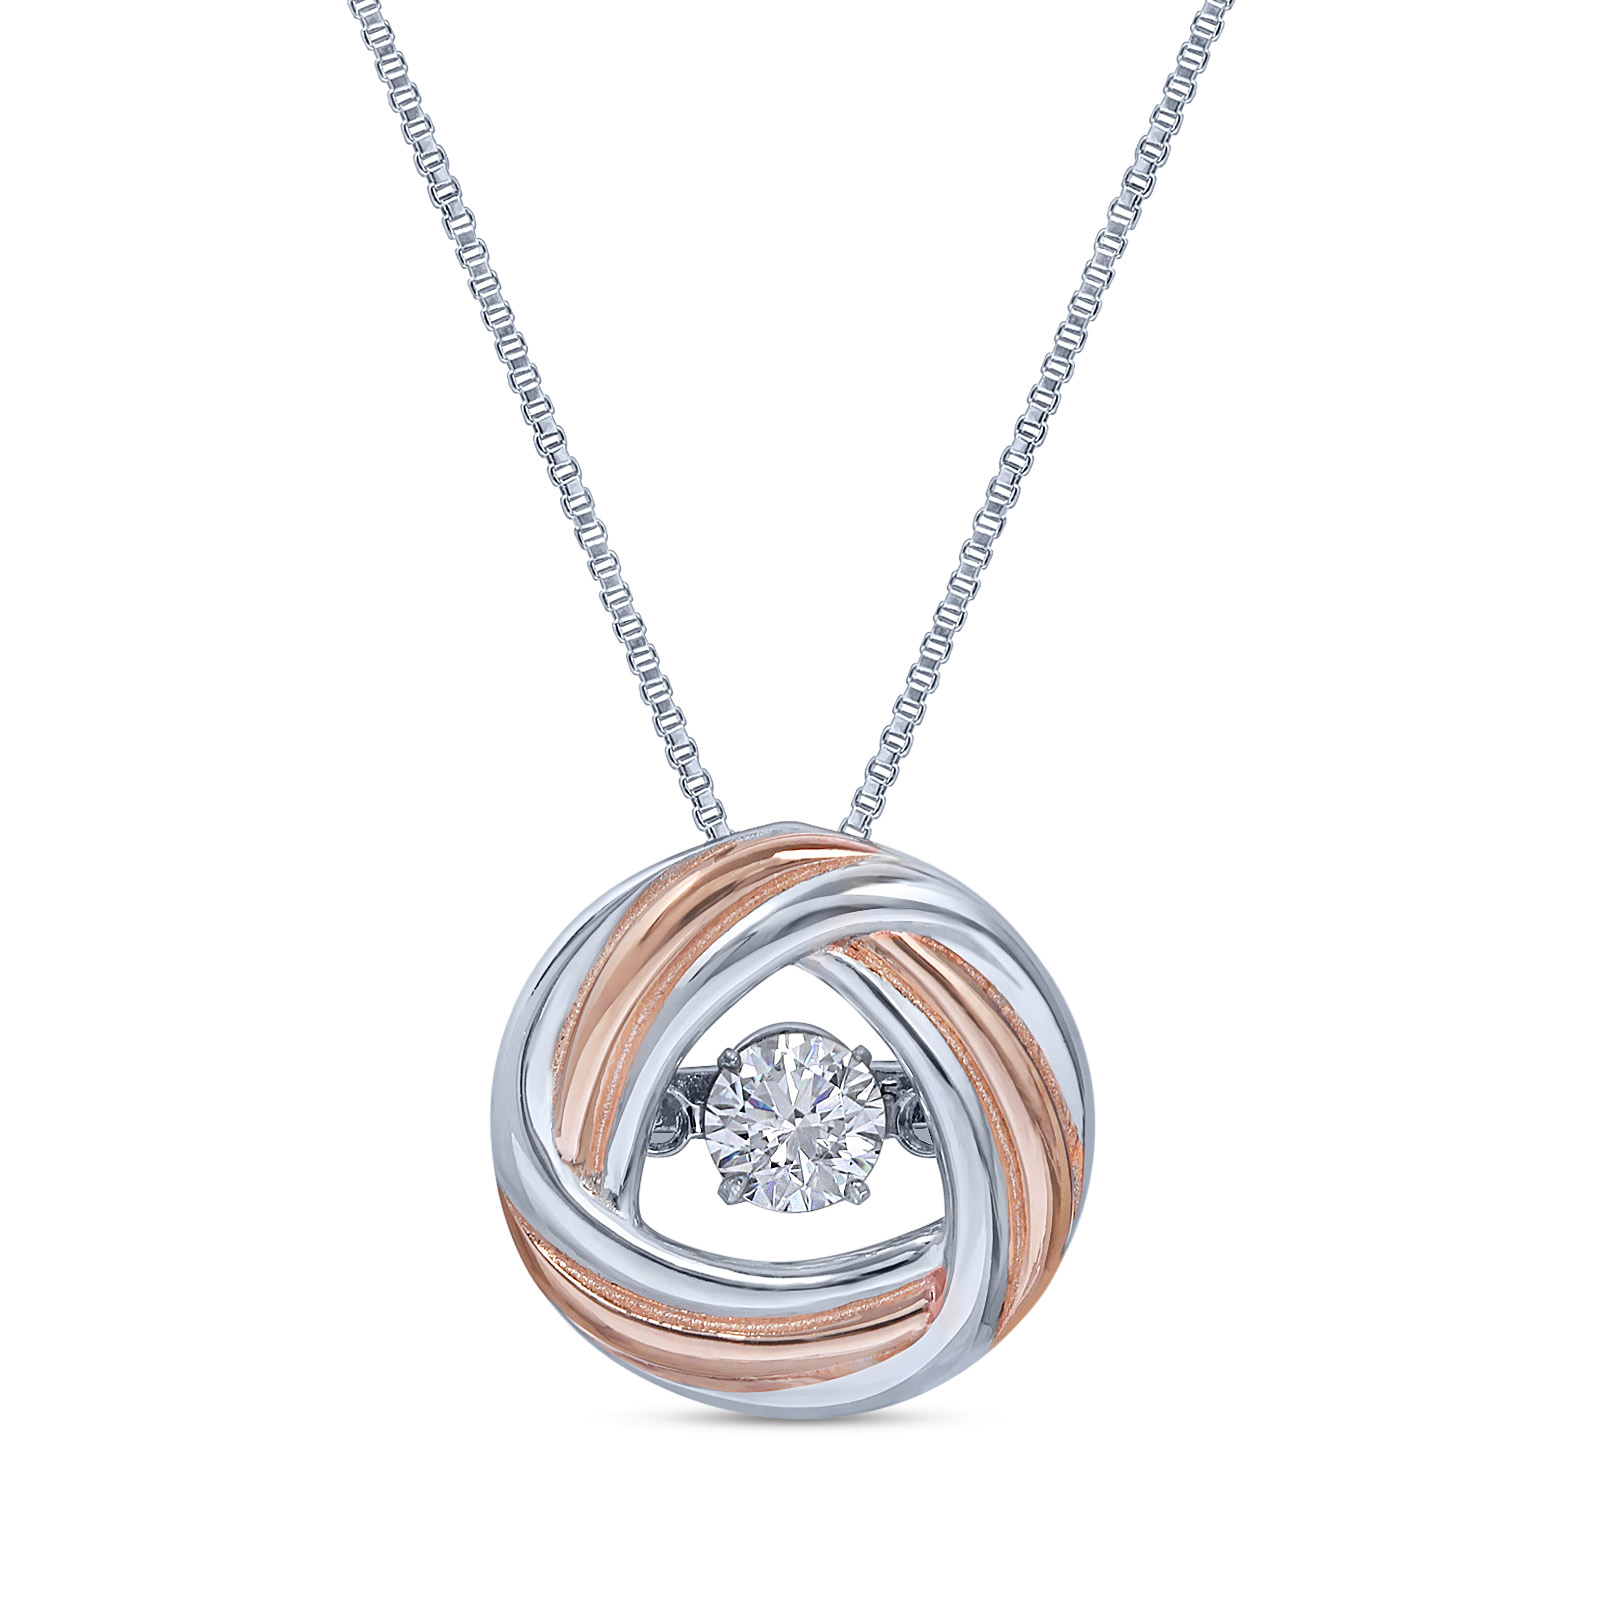 741b3b612cfb7 Rosny & Company Inc | Quality Wholesale Jewelry | Necklaces ...